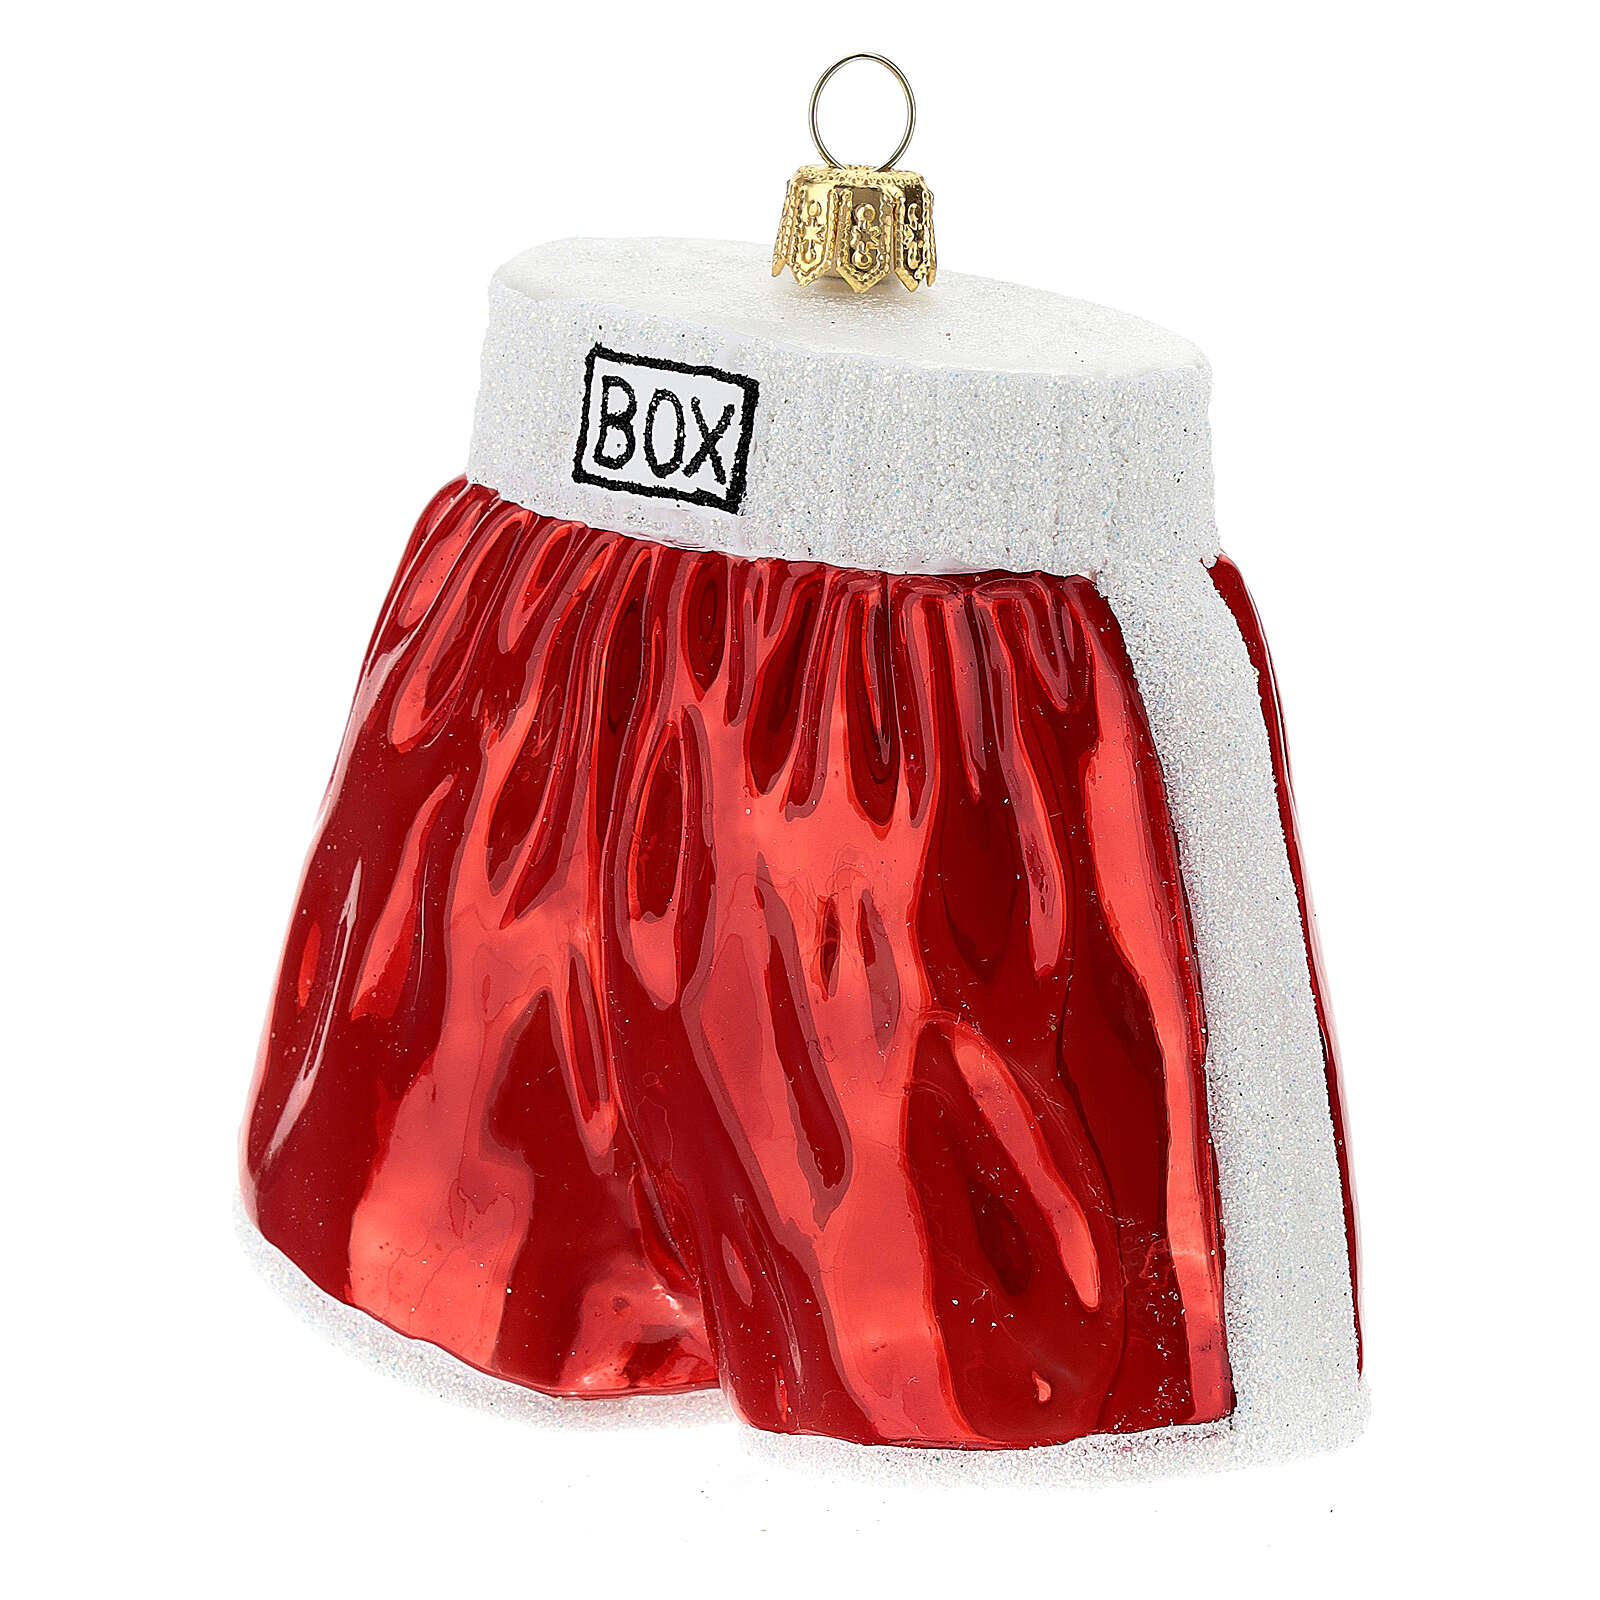 Blown glass Christmas ornament, boxing shorts 4